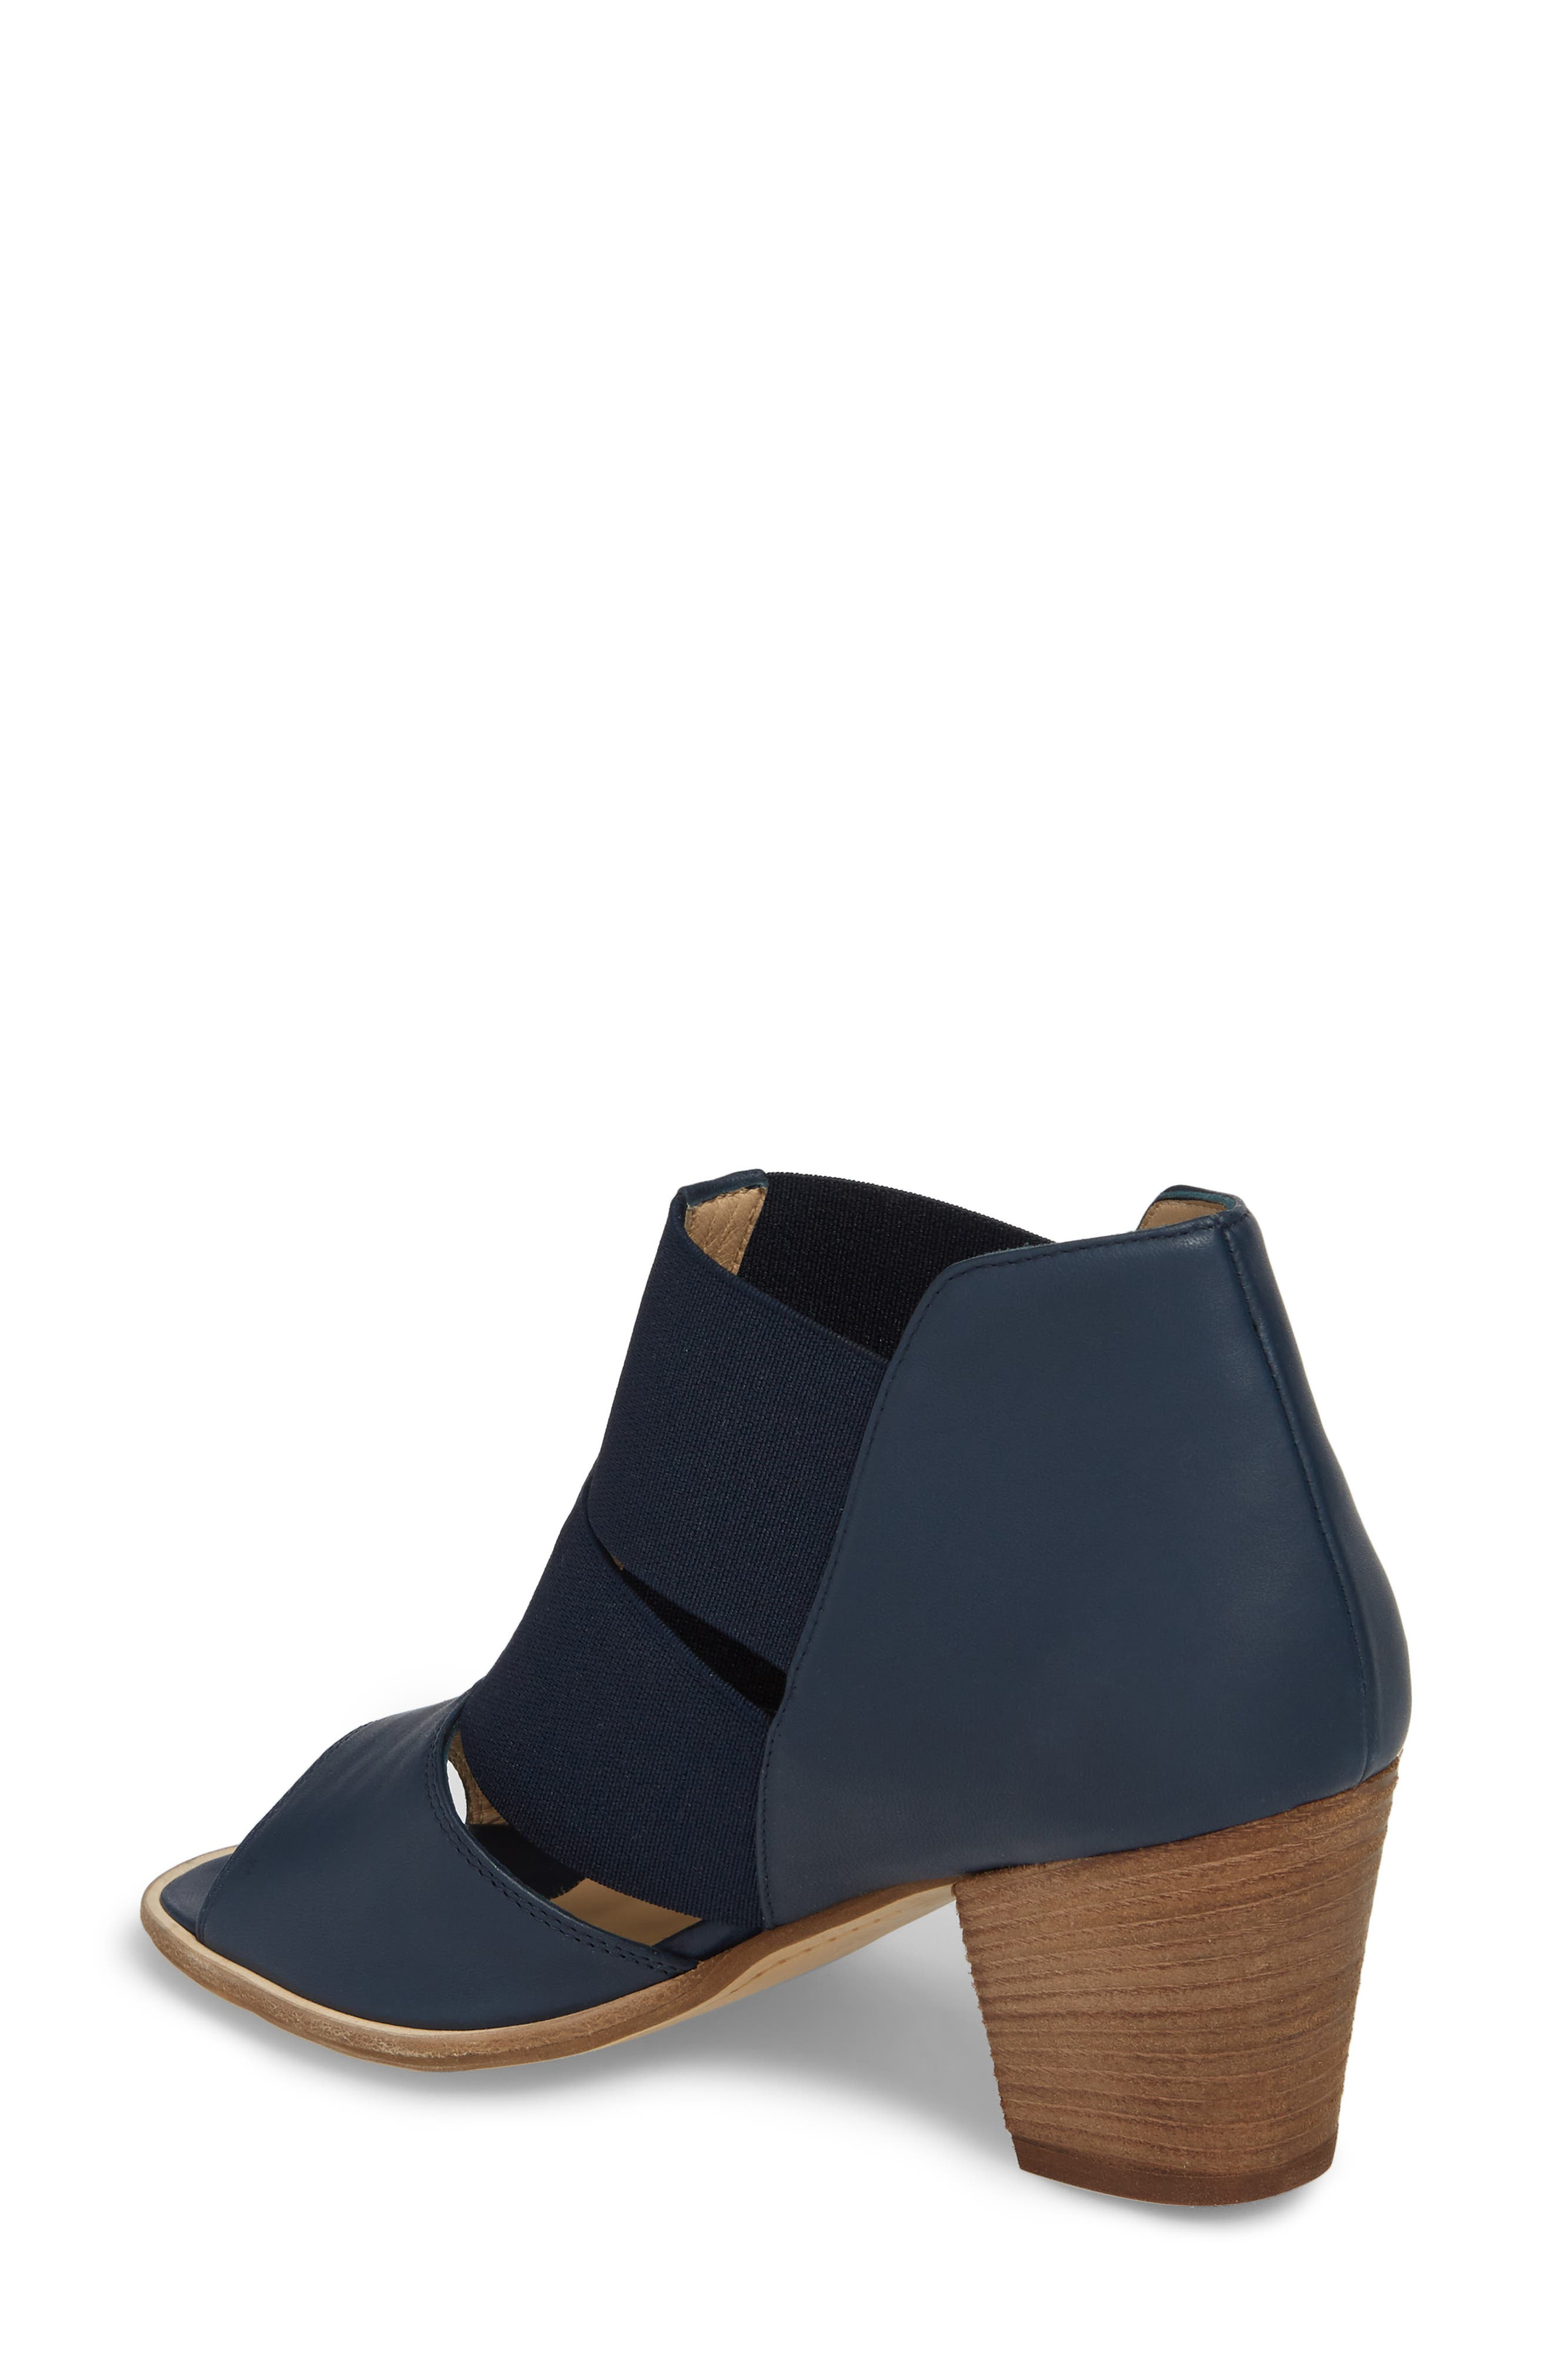 Cestello Bootie,                             Alternate thumbnail 2, color,                             Blue/ Green Leather